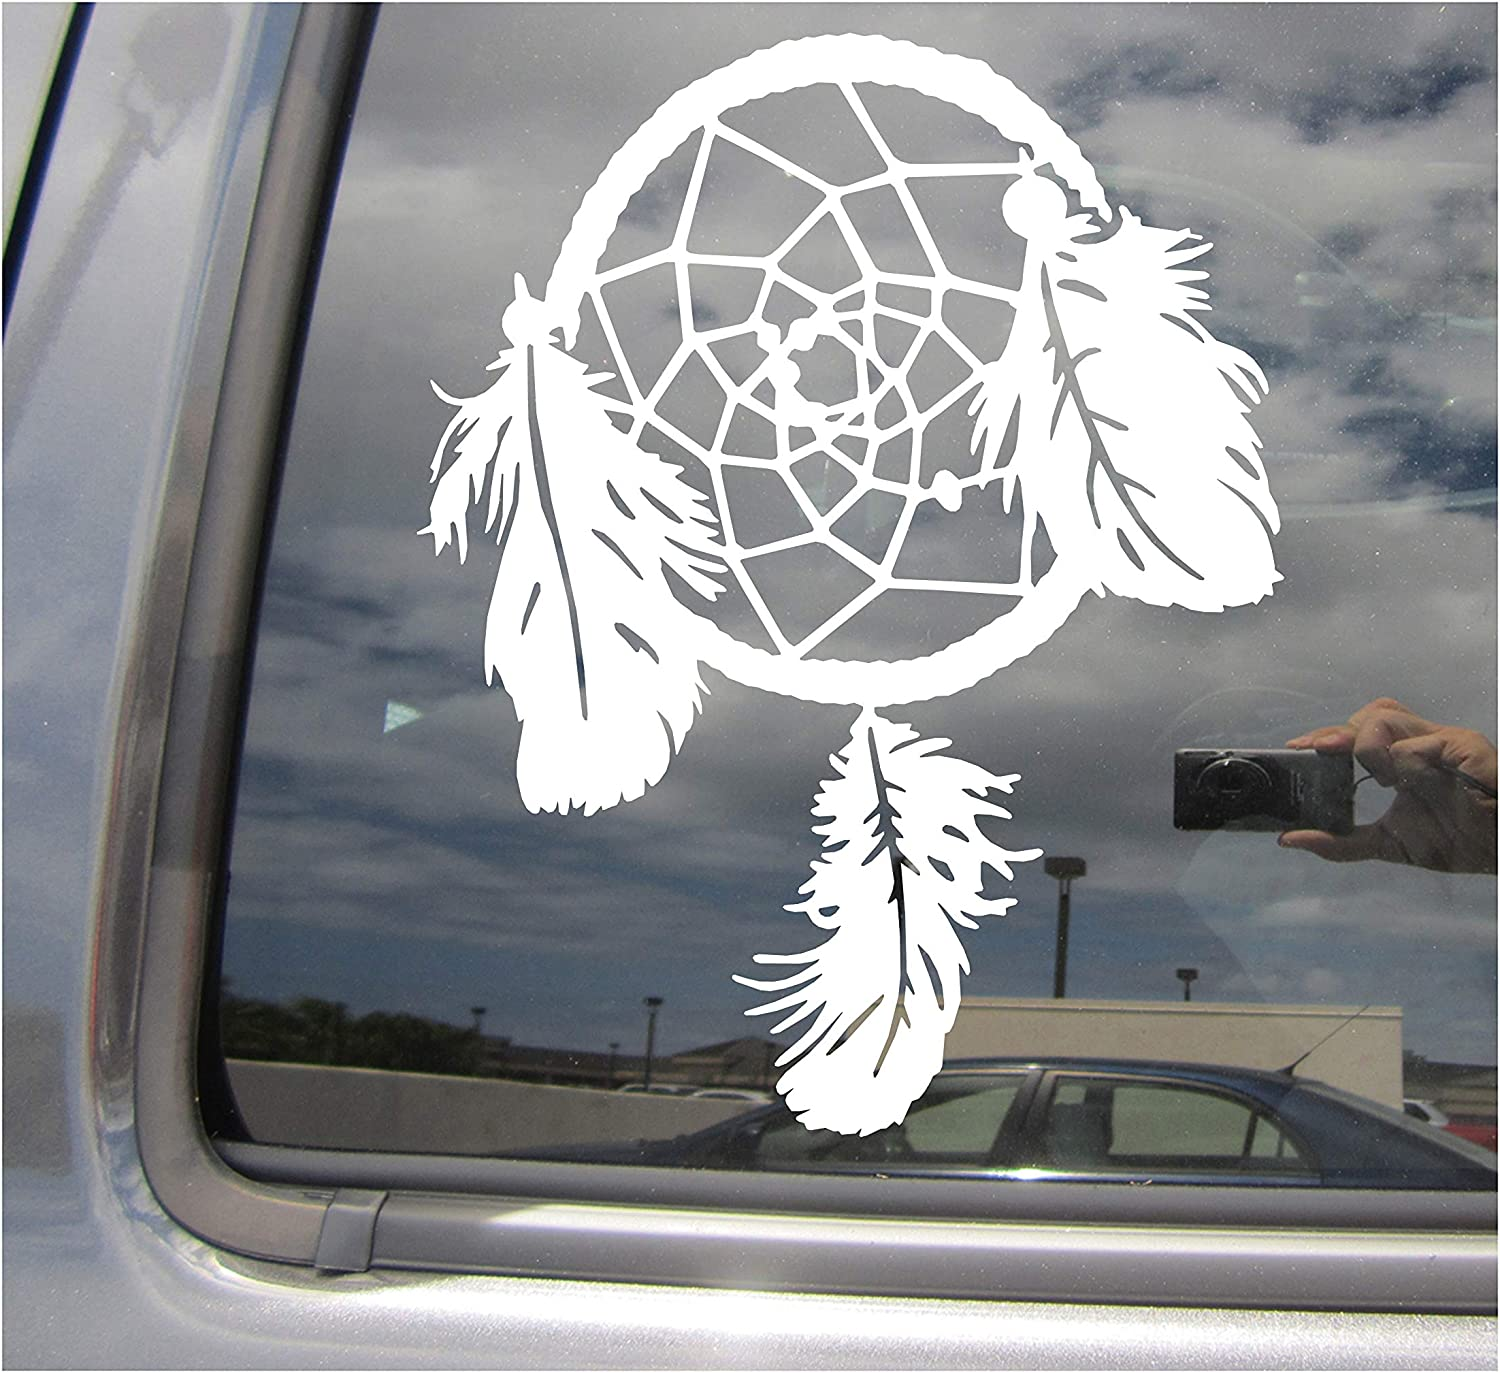 Native American Indian Cars Trucks Moped Helmet Hard Hat Auto Automotive Craft Laptop Vinyl Decal Store Window Wall Sticker 10154 Right Now Decals Dreamcatcher Dream Catcher